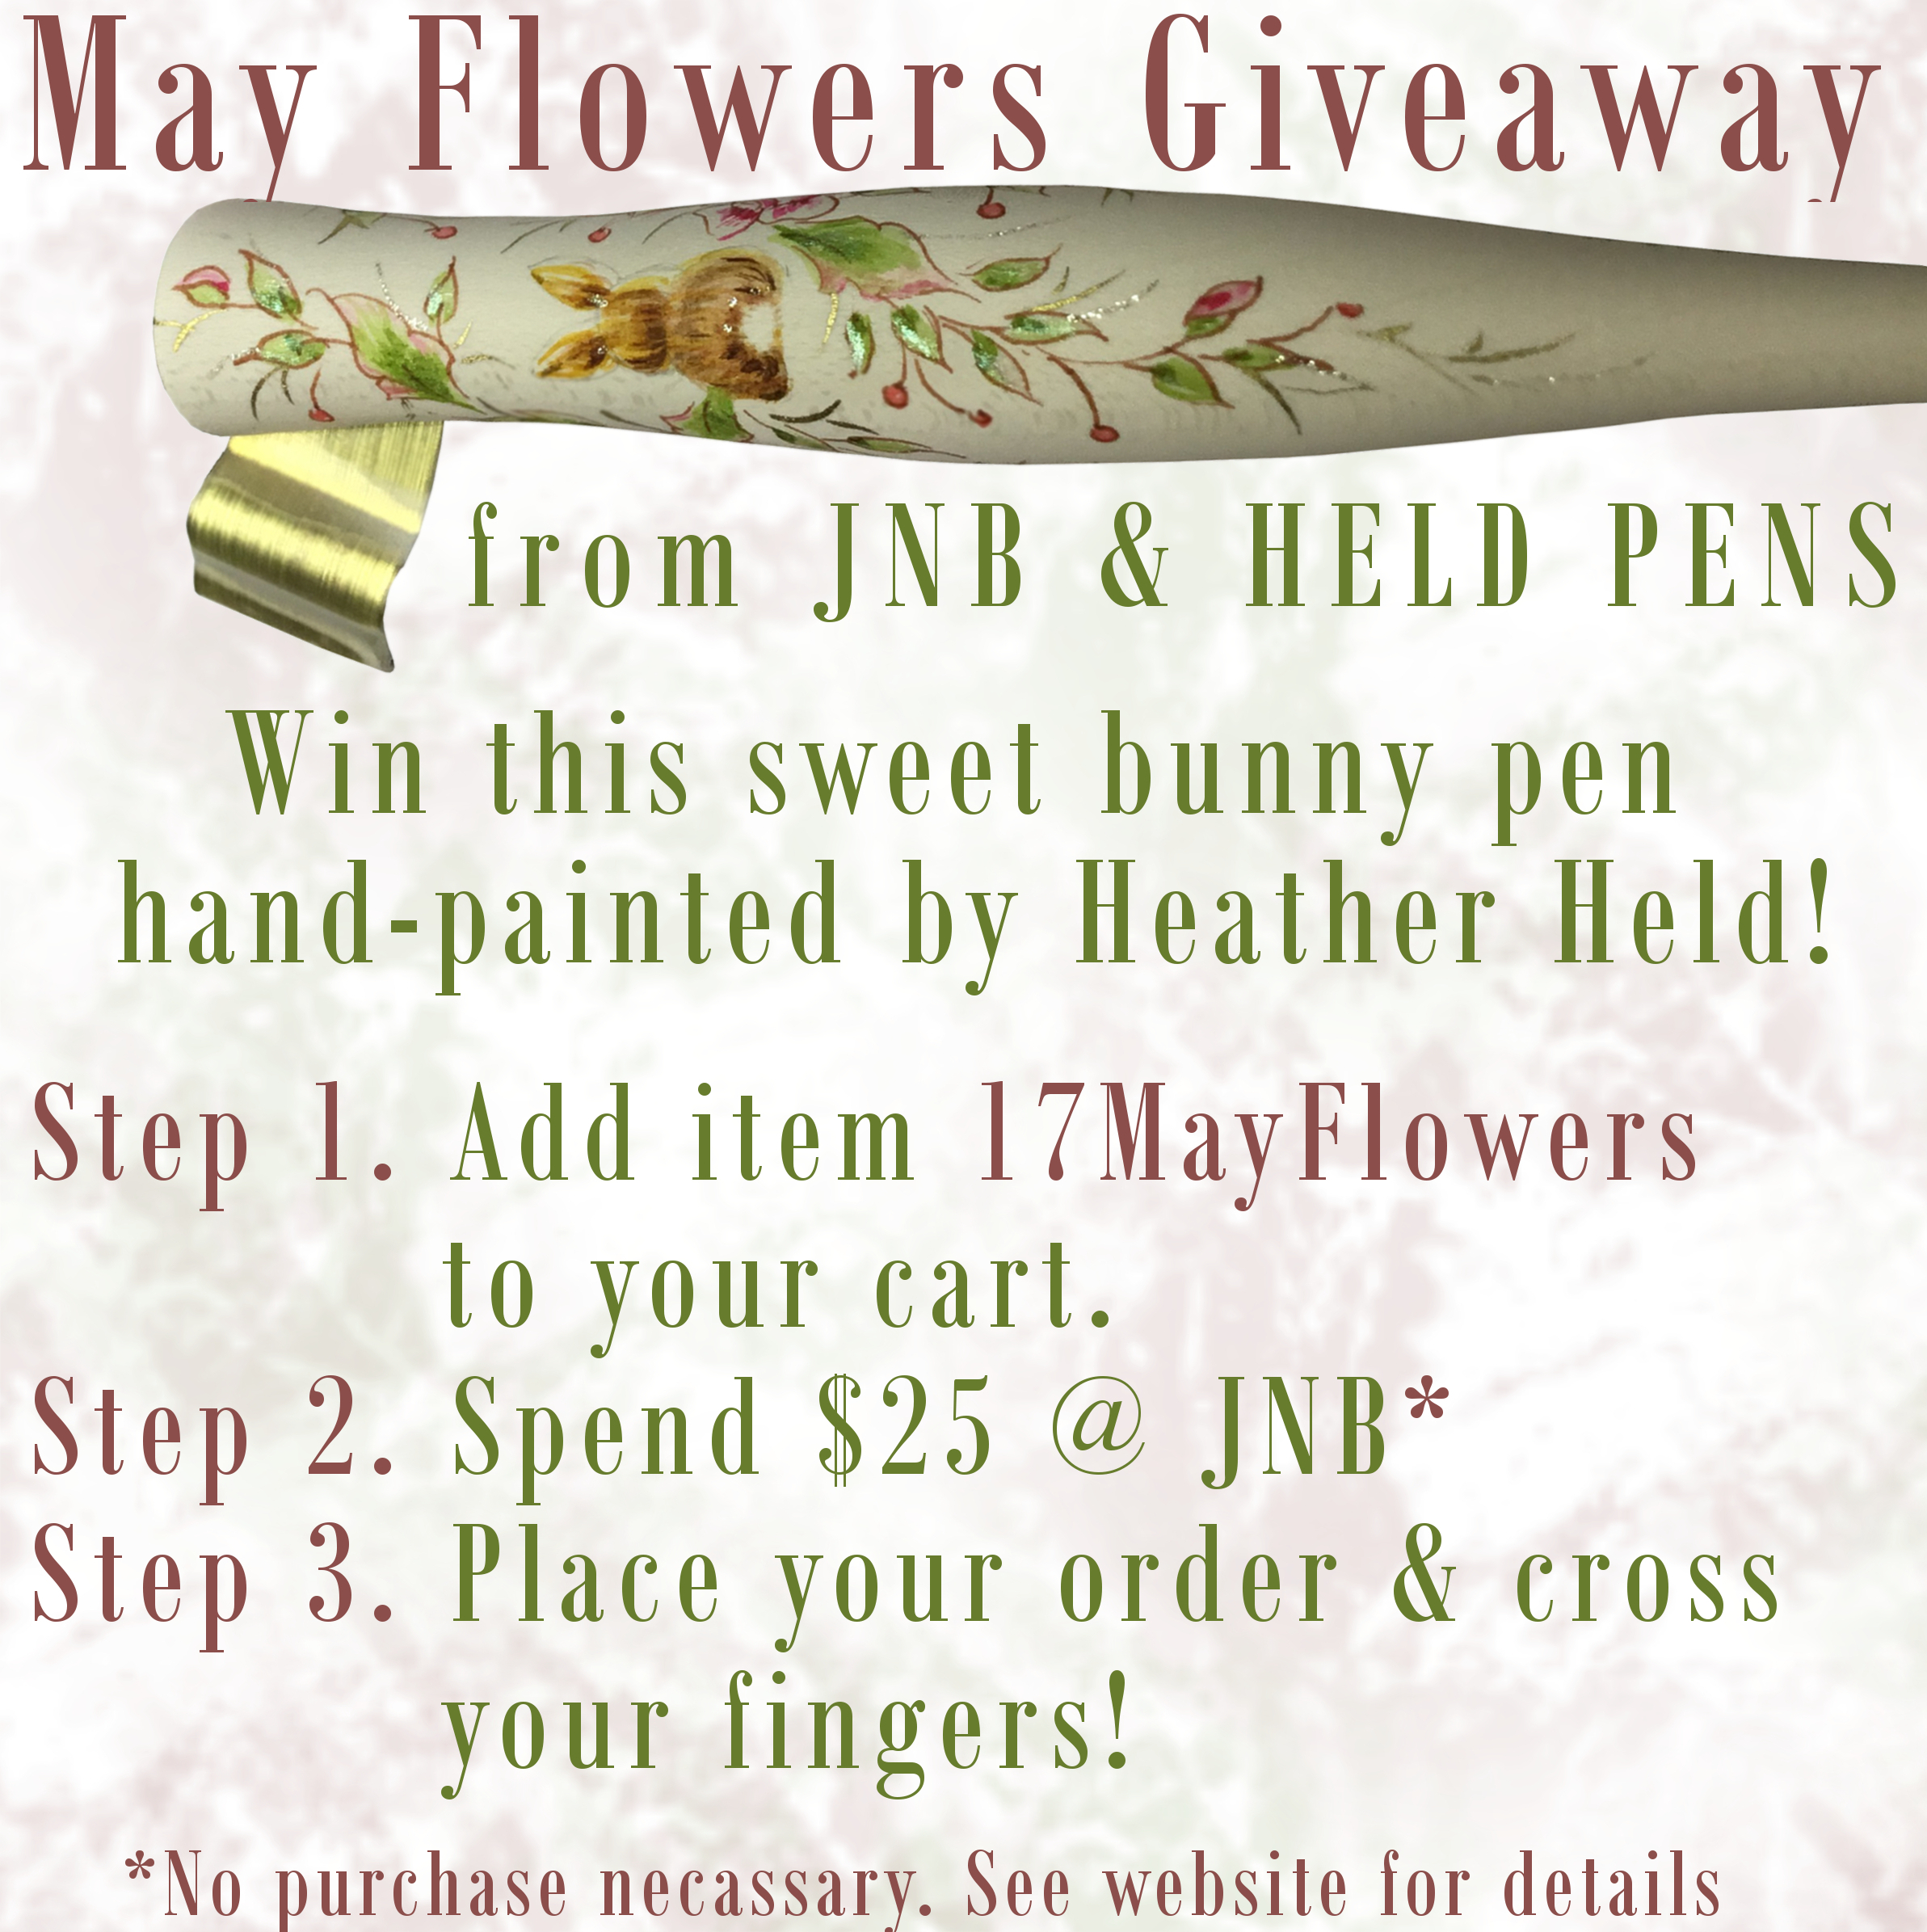 May Flowers Giveaway with Held Pens | John Neal Bookseller Blog